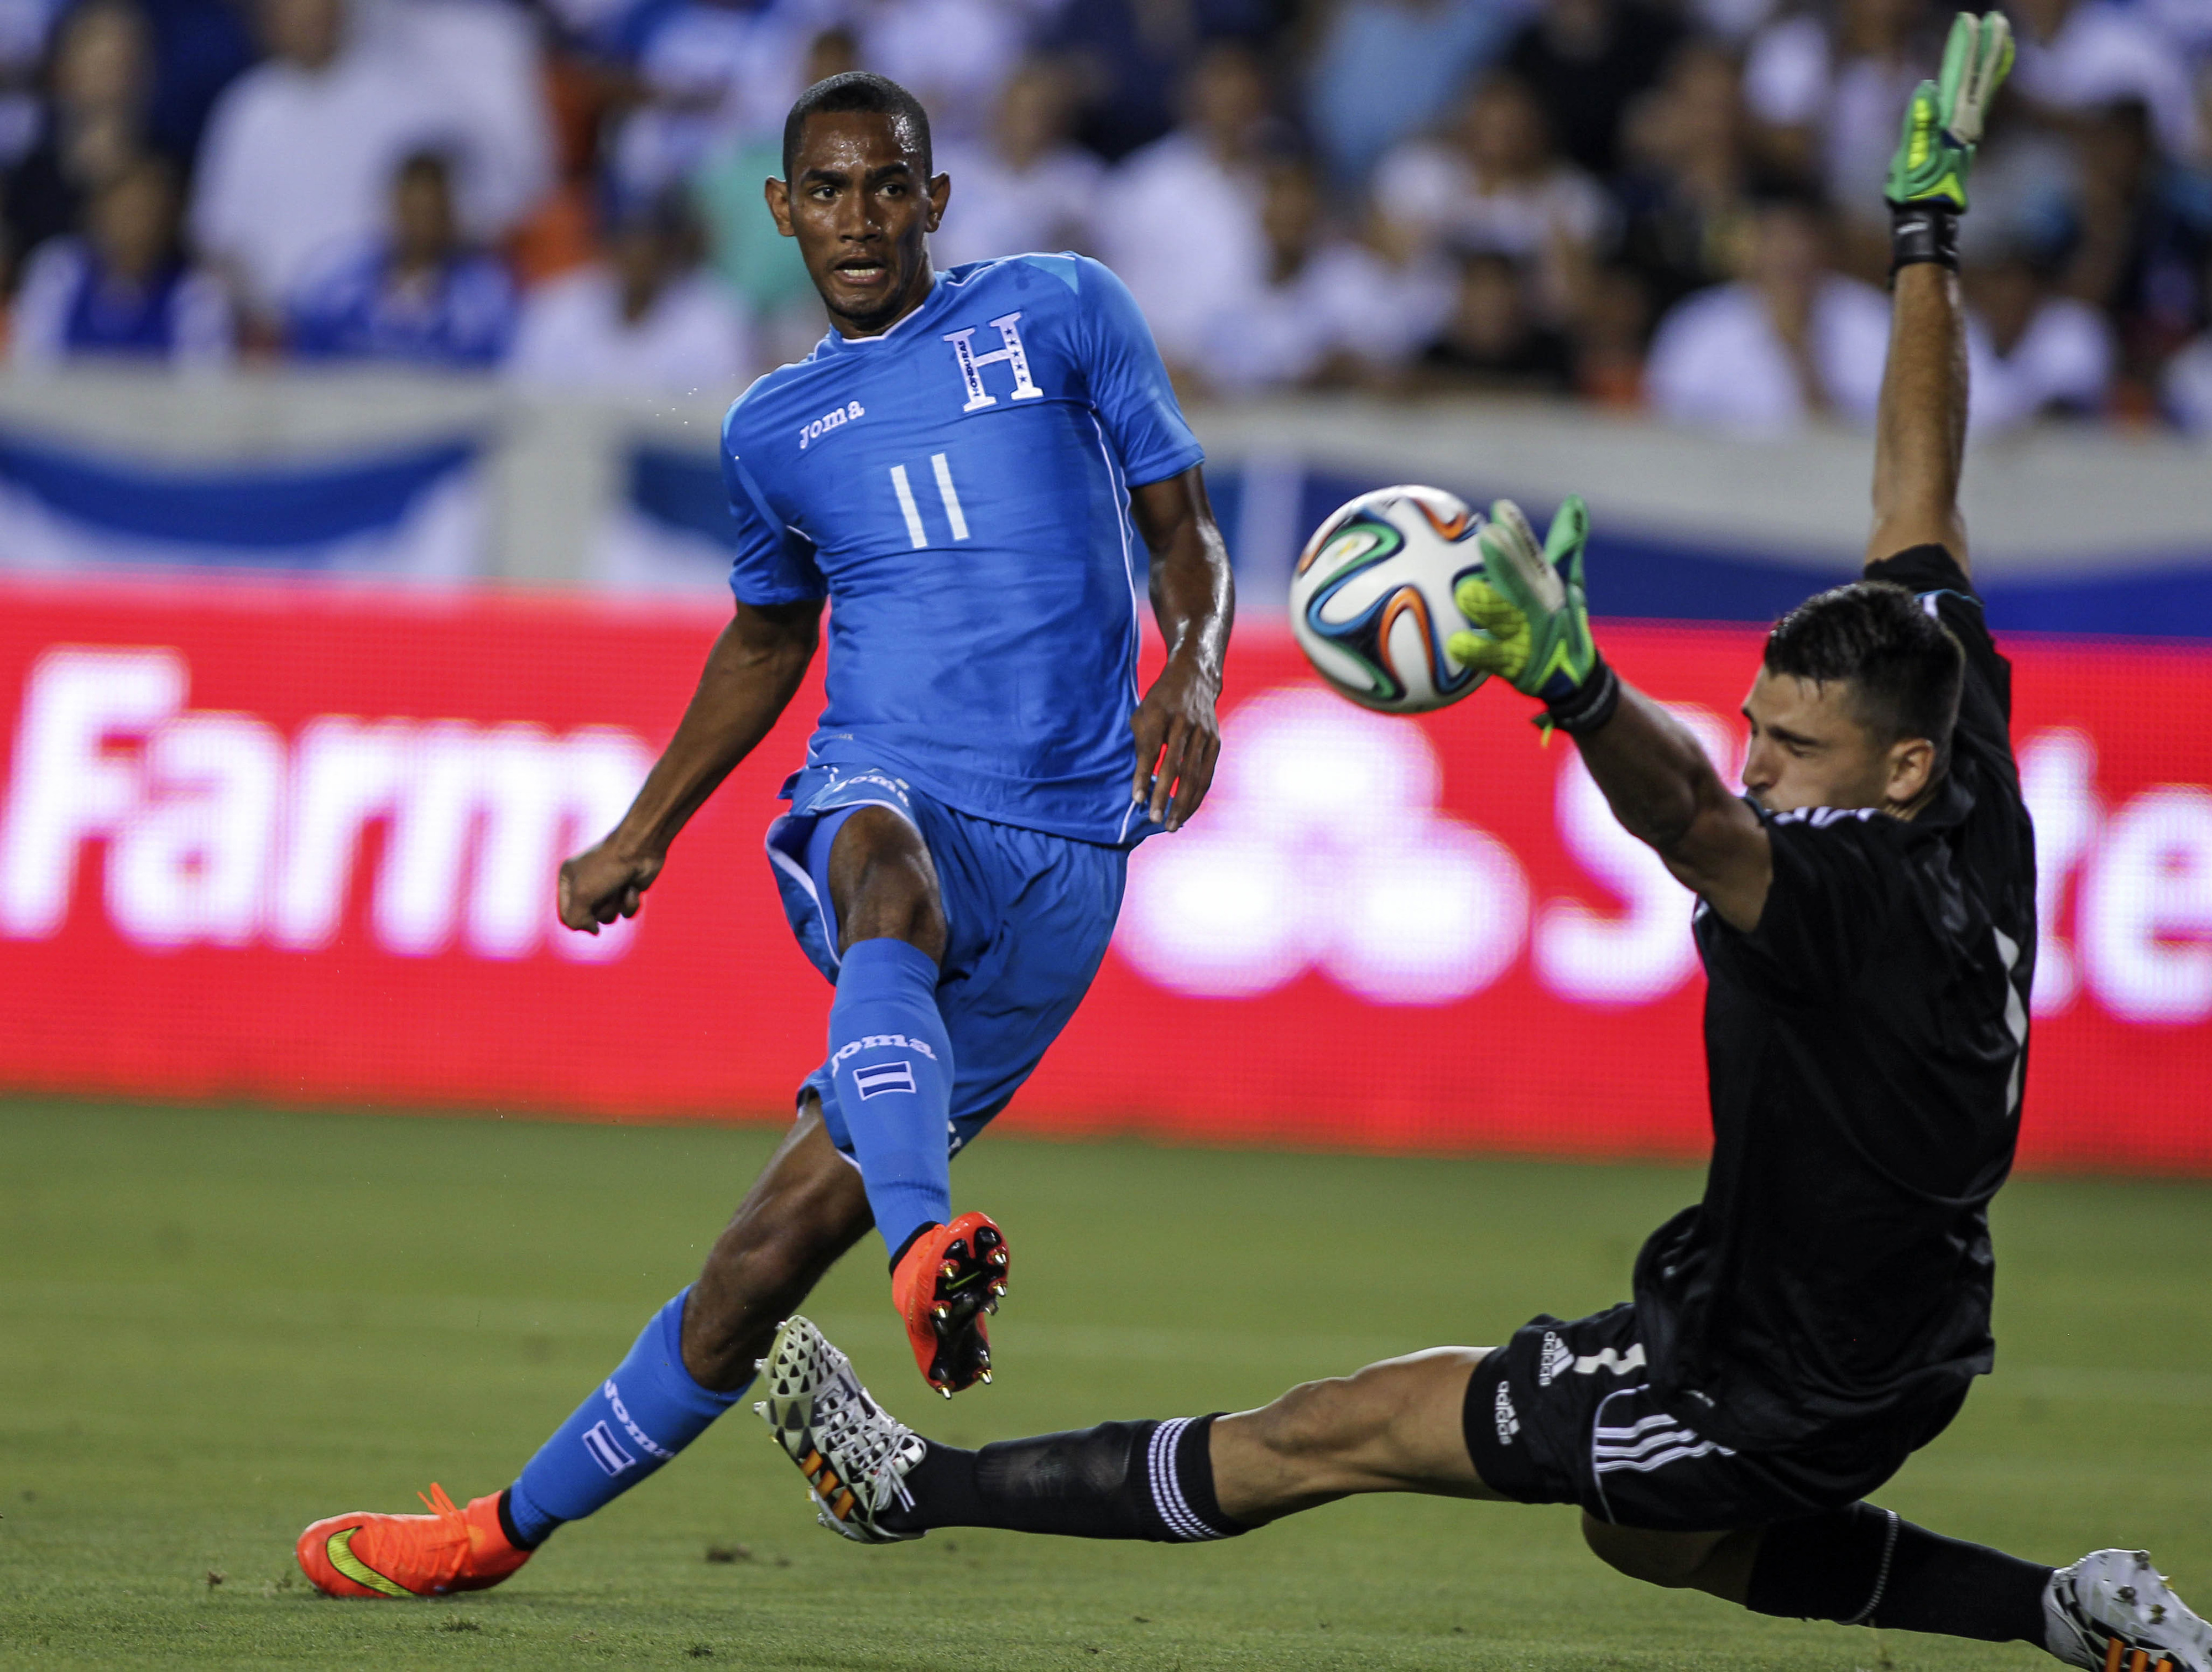 Bengston has shone for Honduras since his 2010 debut, though his Revolution campaign has struggled to keep up